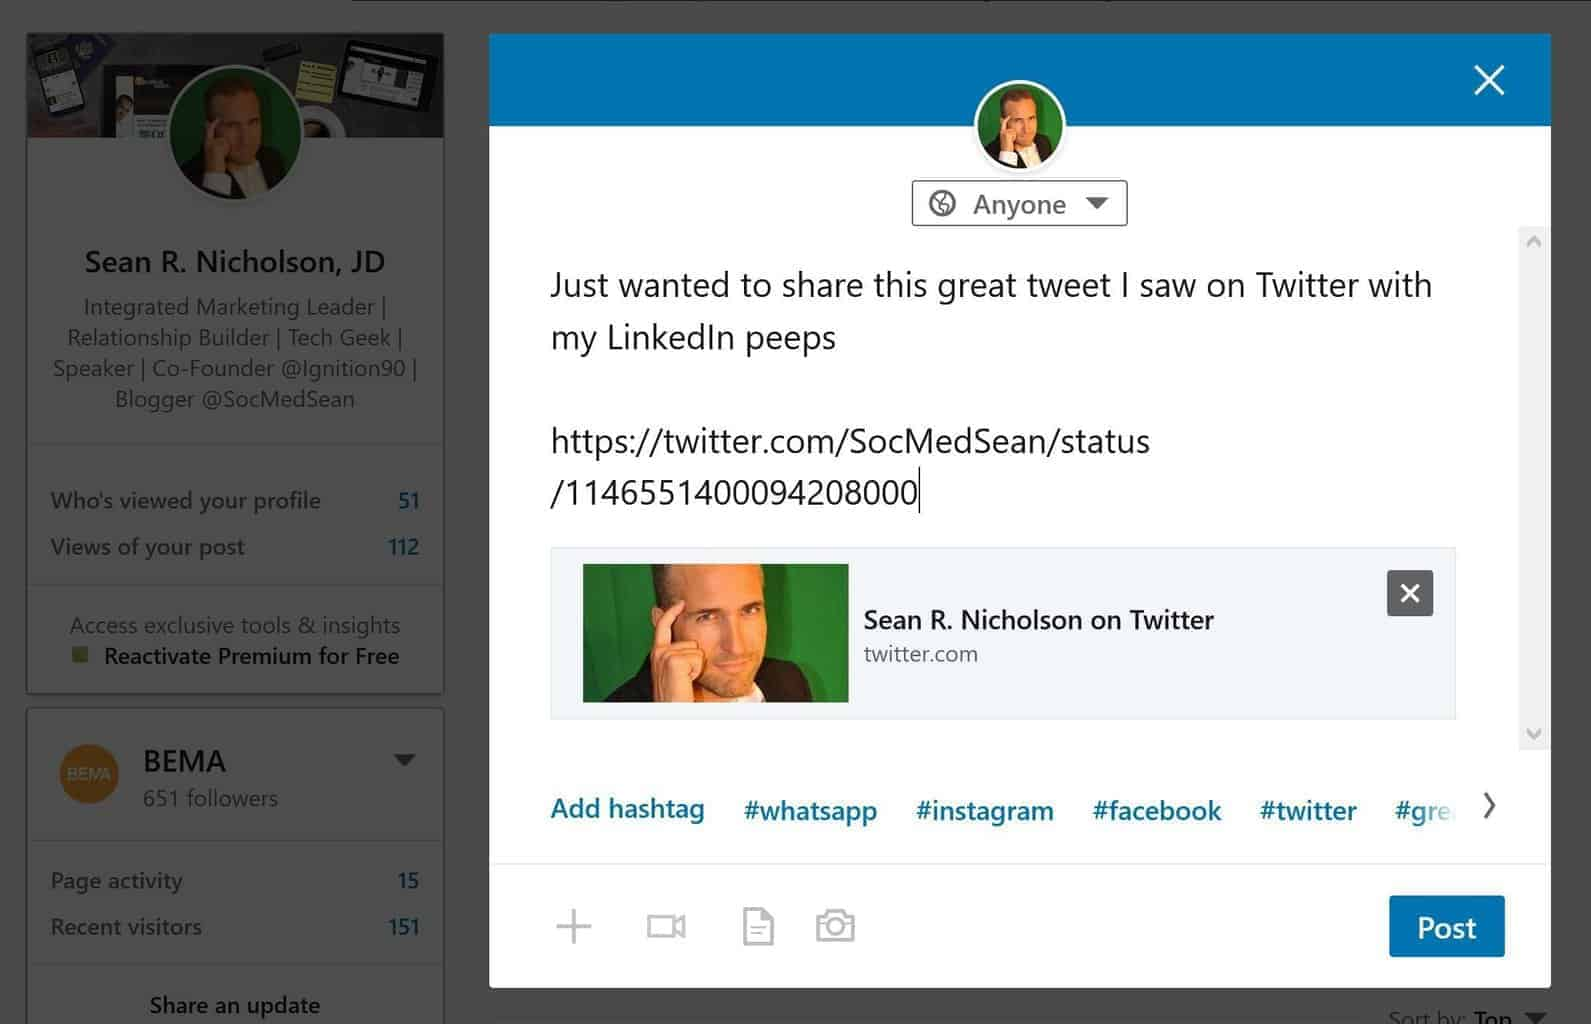 ANSWERED] How Do I Share A Tweet To LinkedIn? - SocMedSean